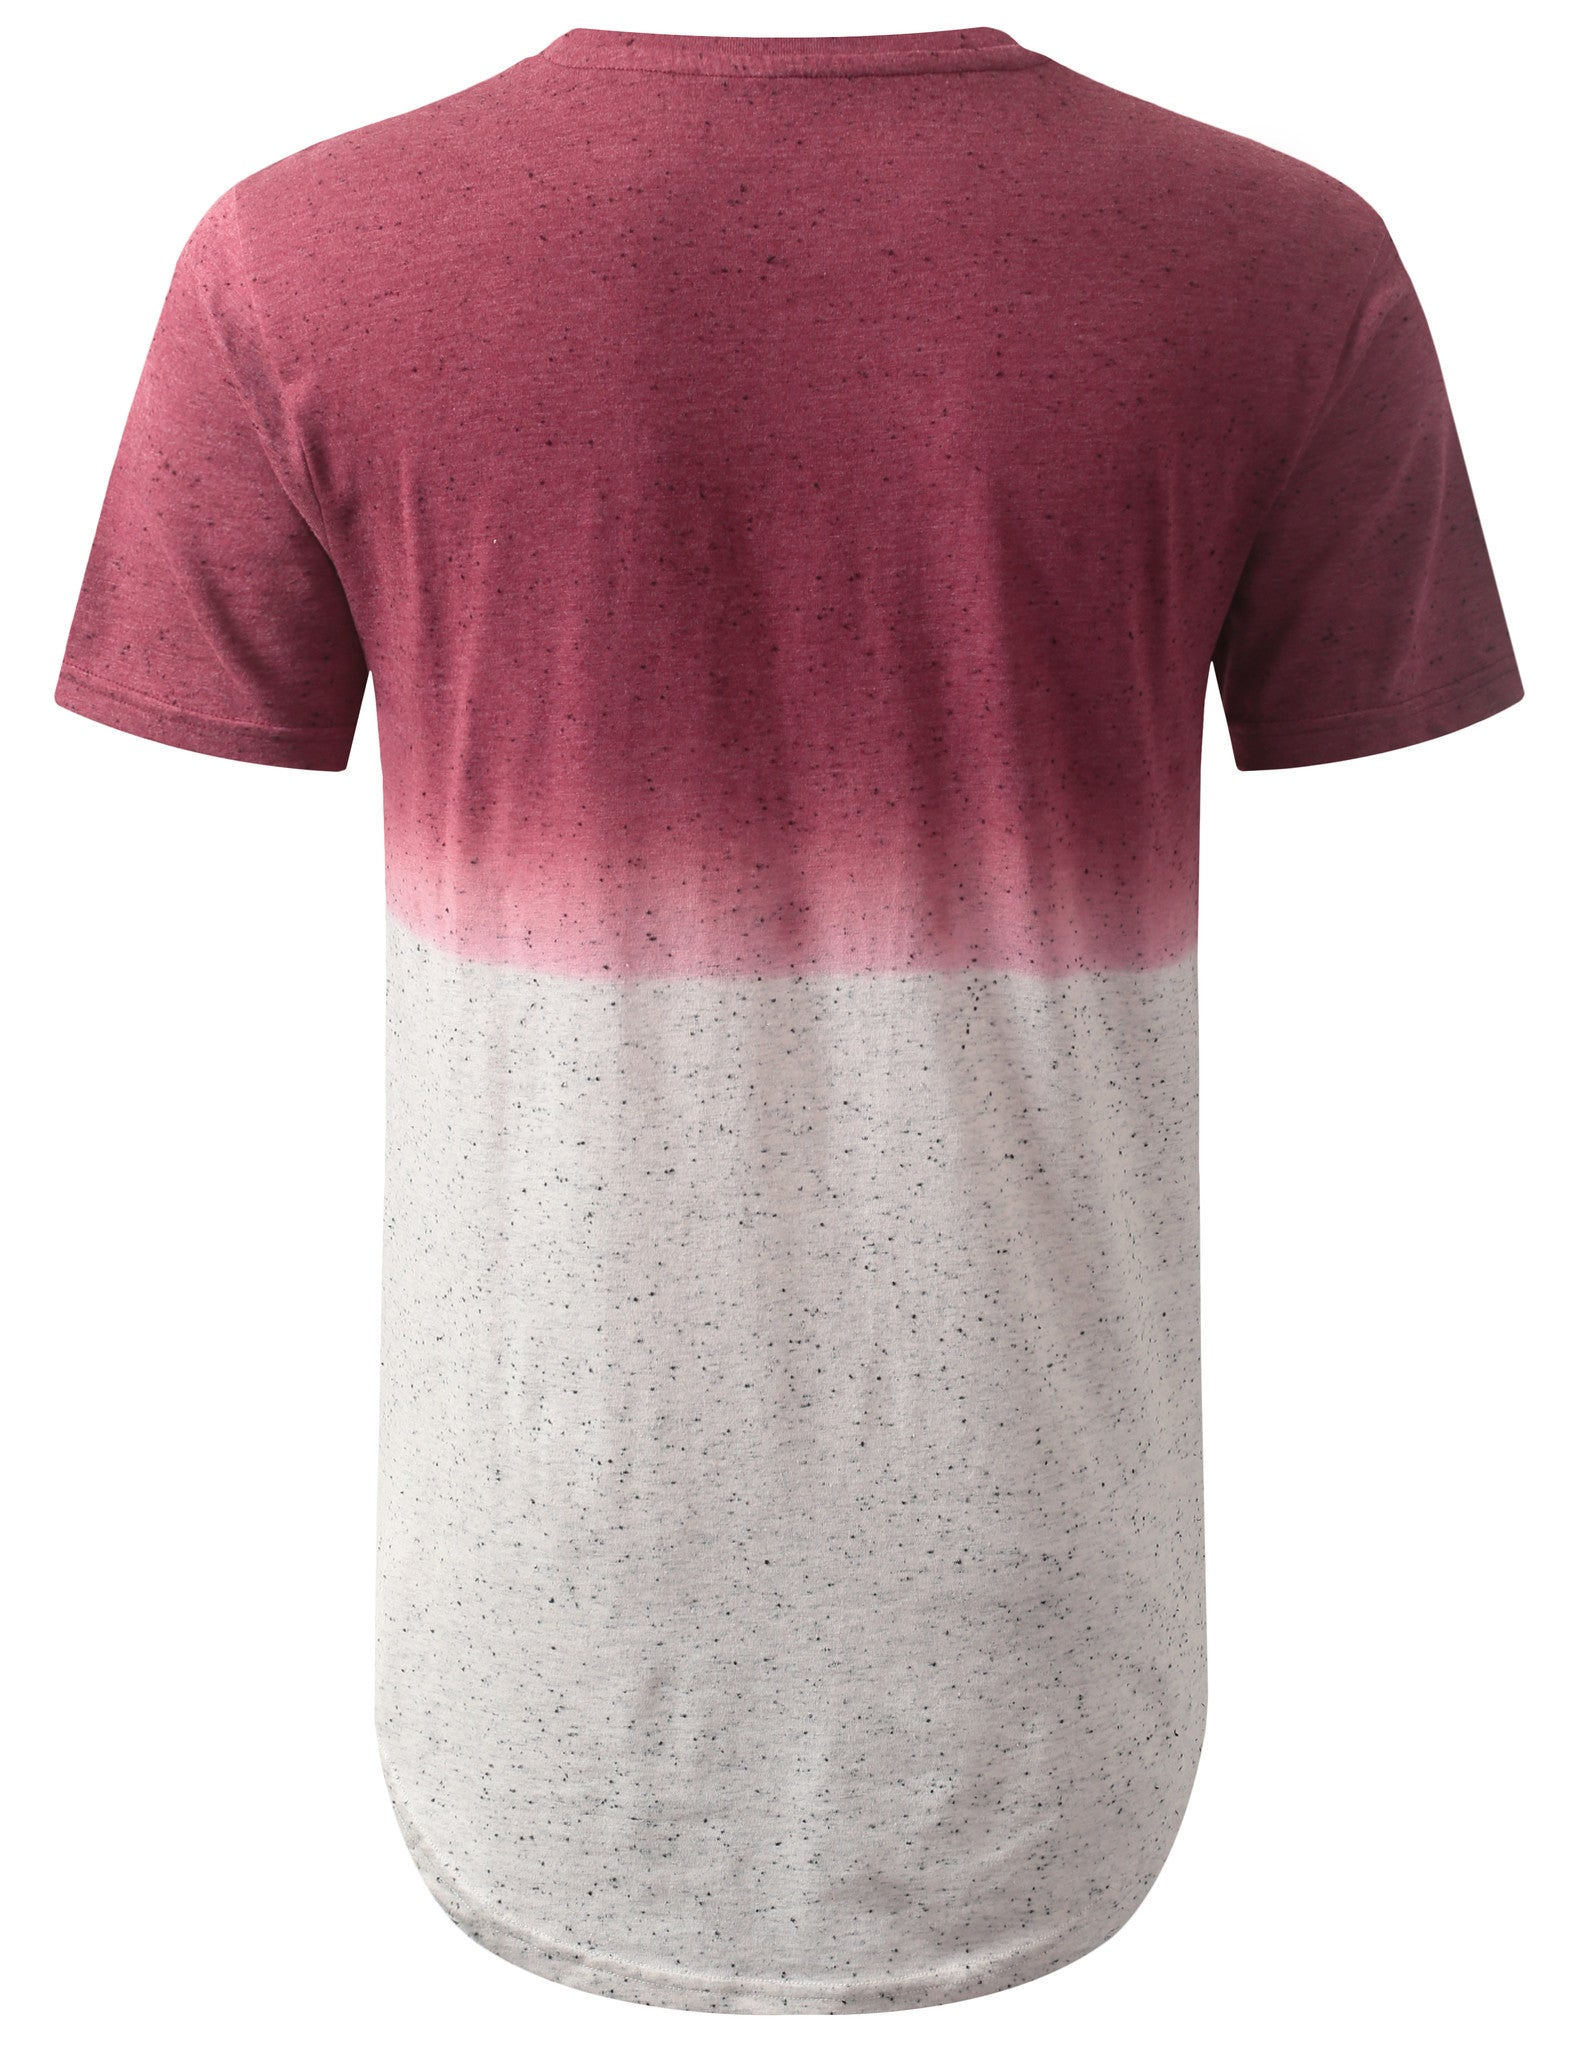 RED Gradient Speckle Longline Crewneck Tshirts- URBANCREWS